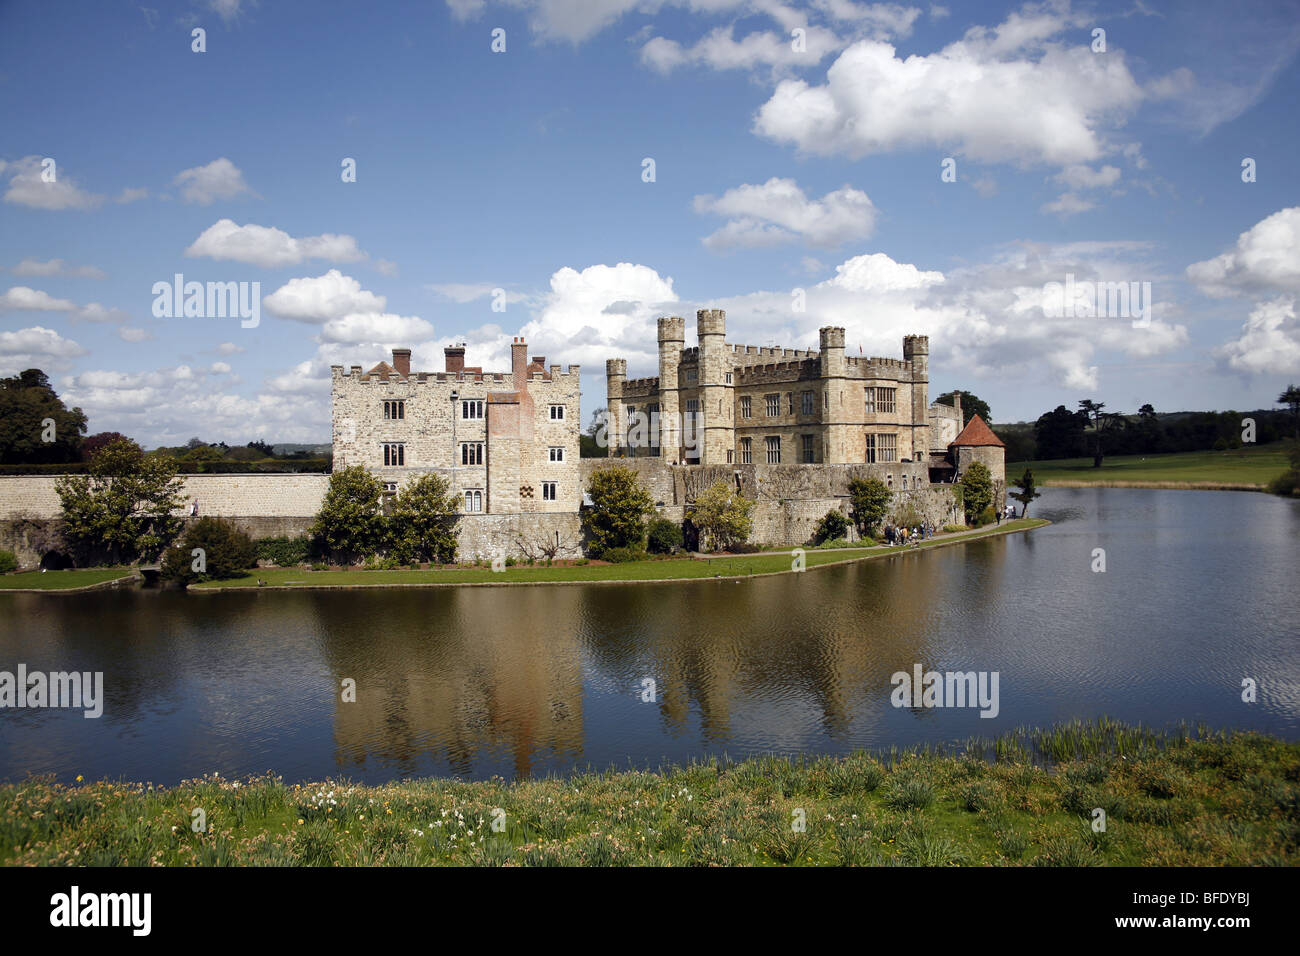 Leeds Castle and moat, Kent, England - Stock Image